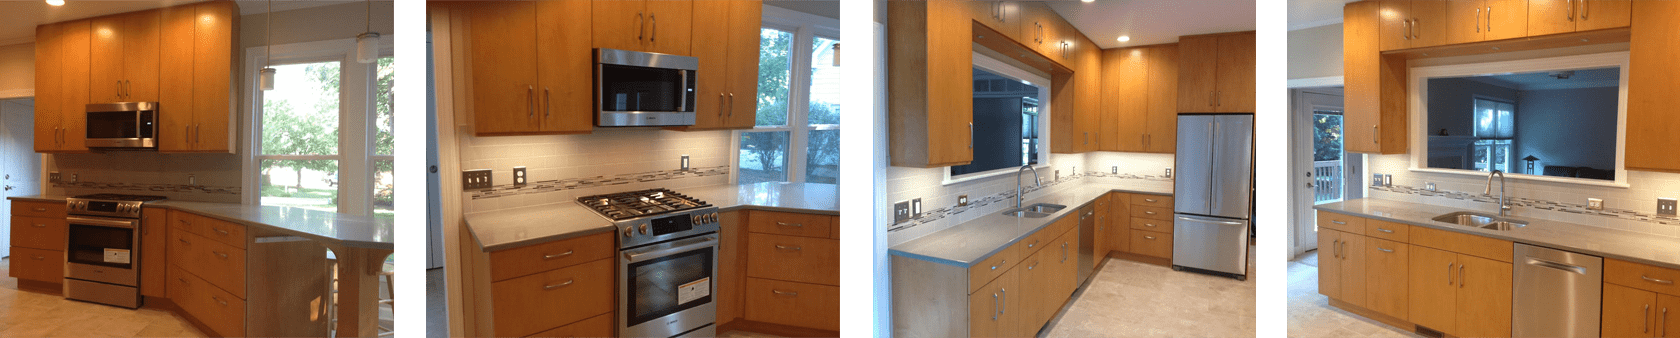 Fully Remodeled Cary Kitchen